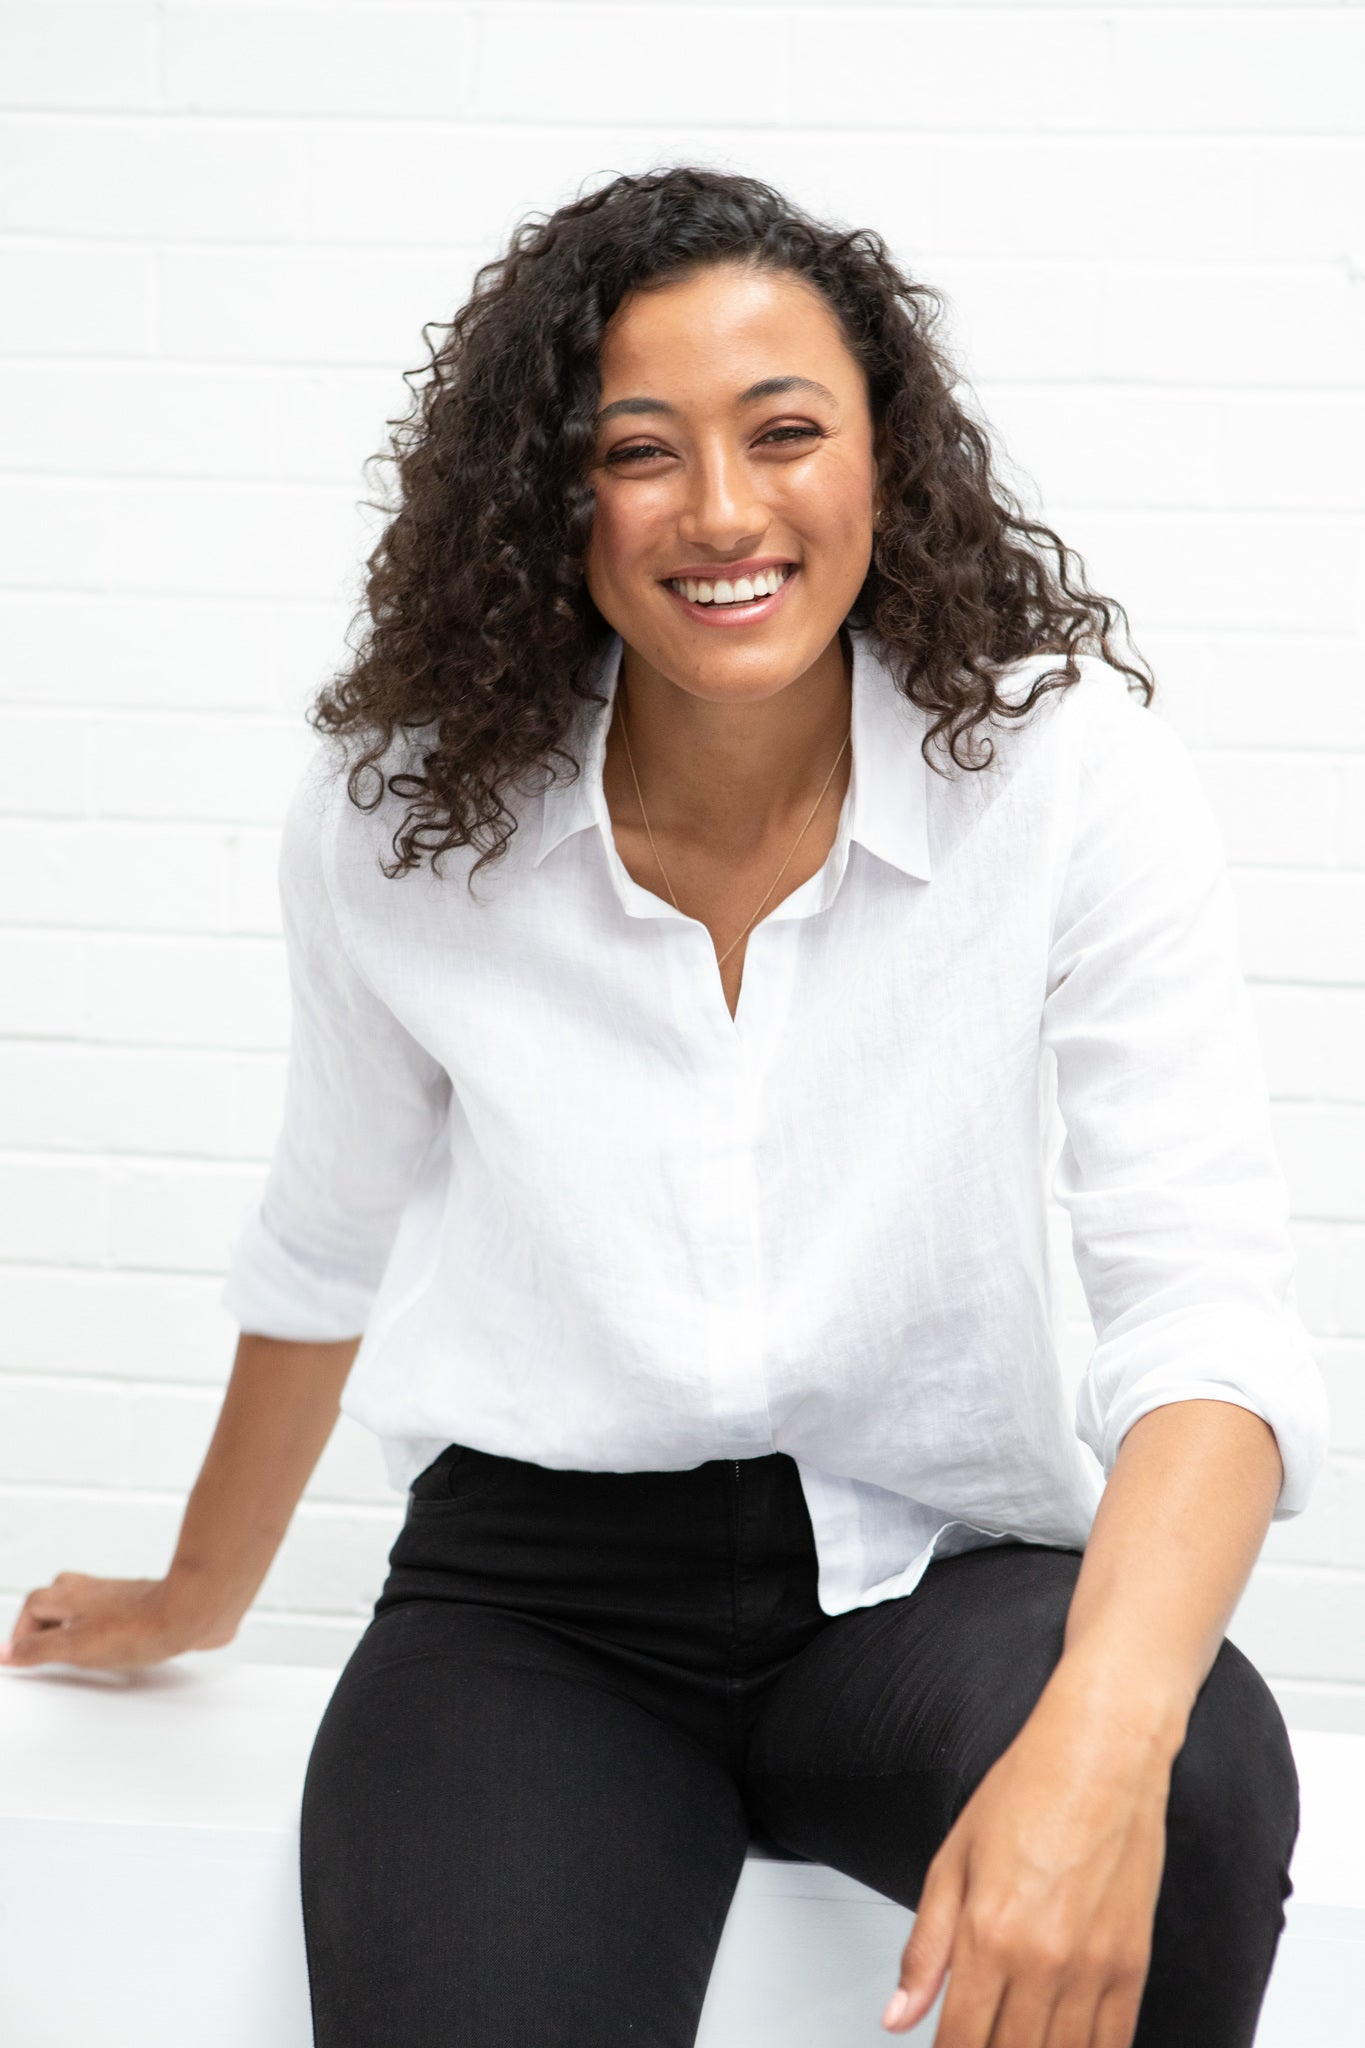 A model wearing a white linen shirt and black pants